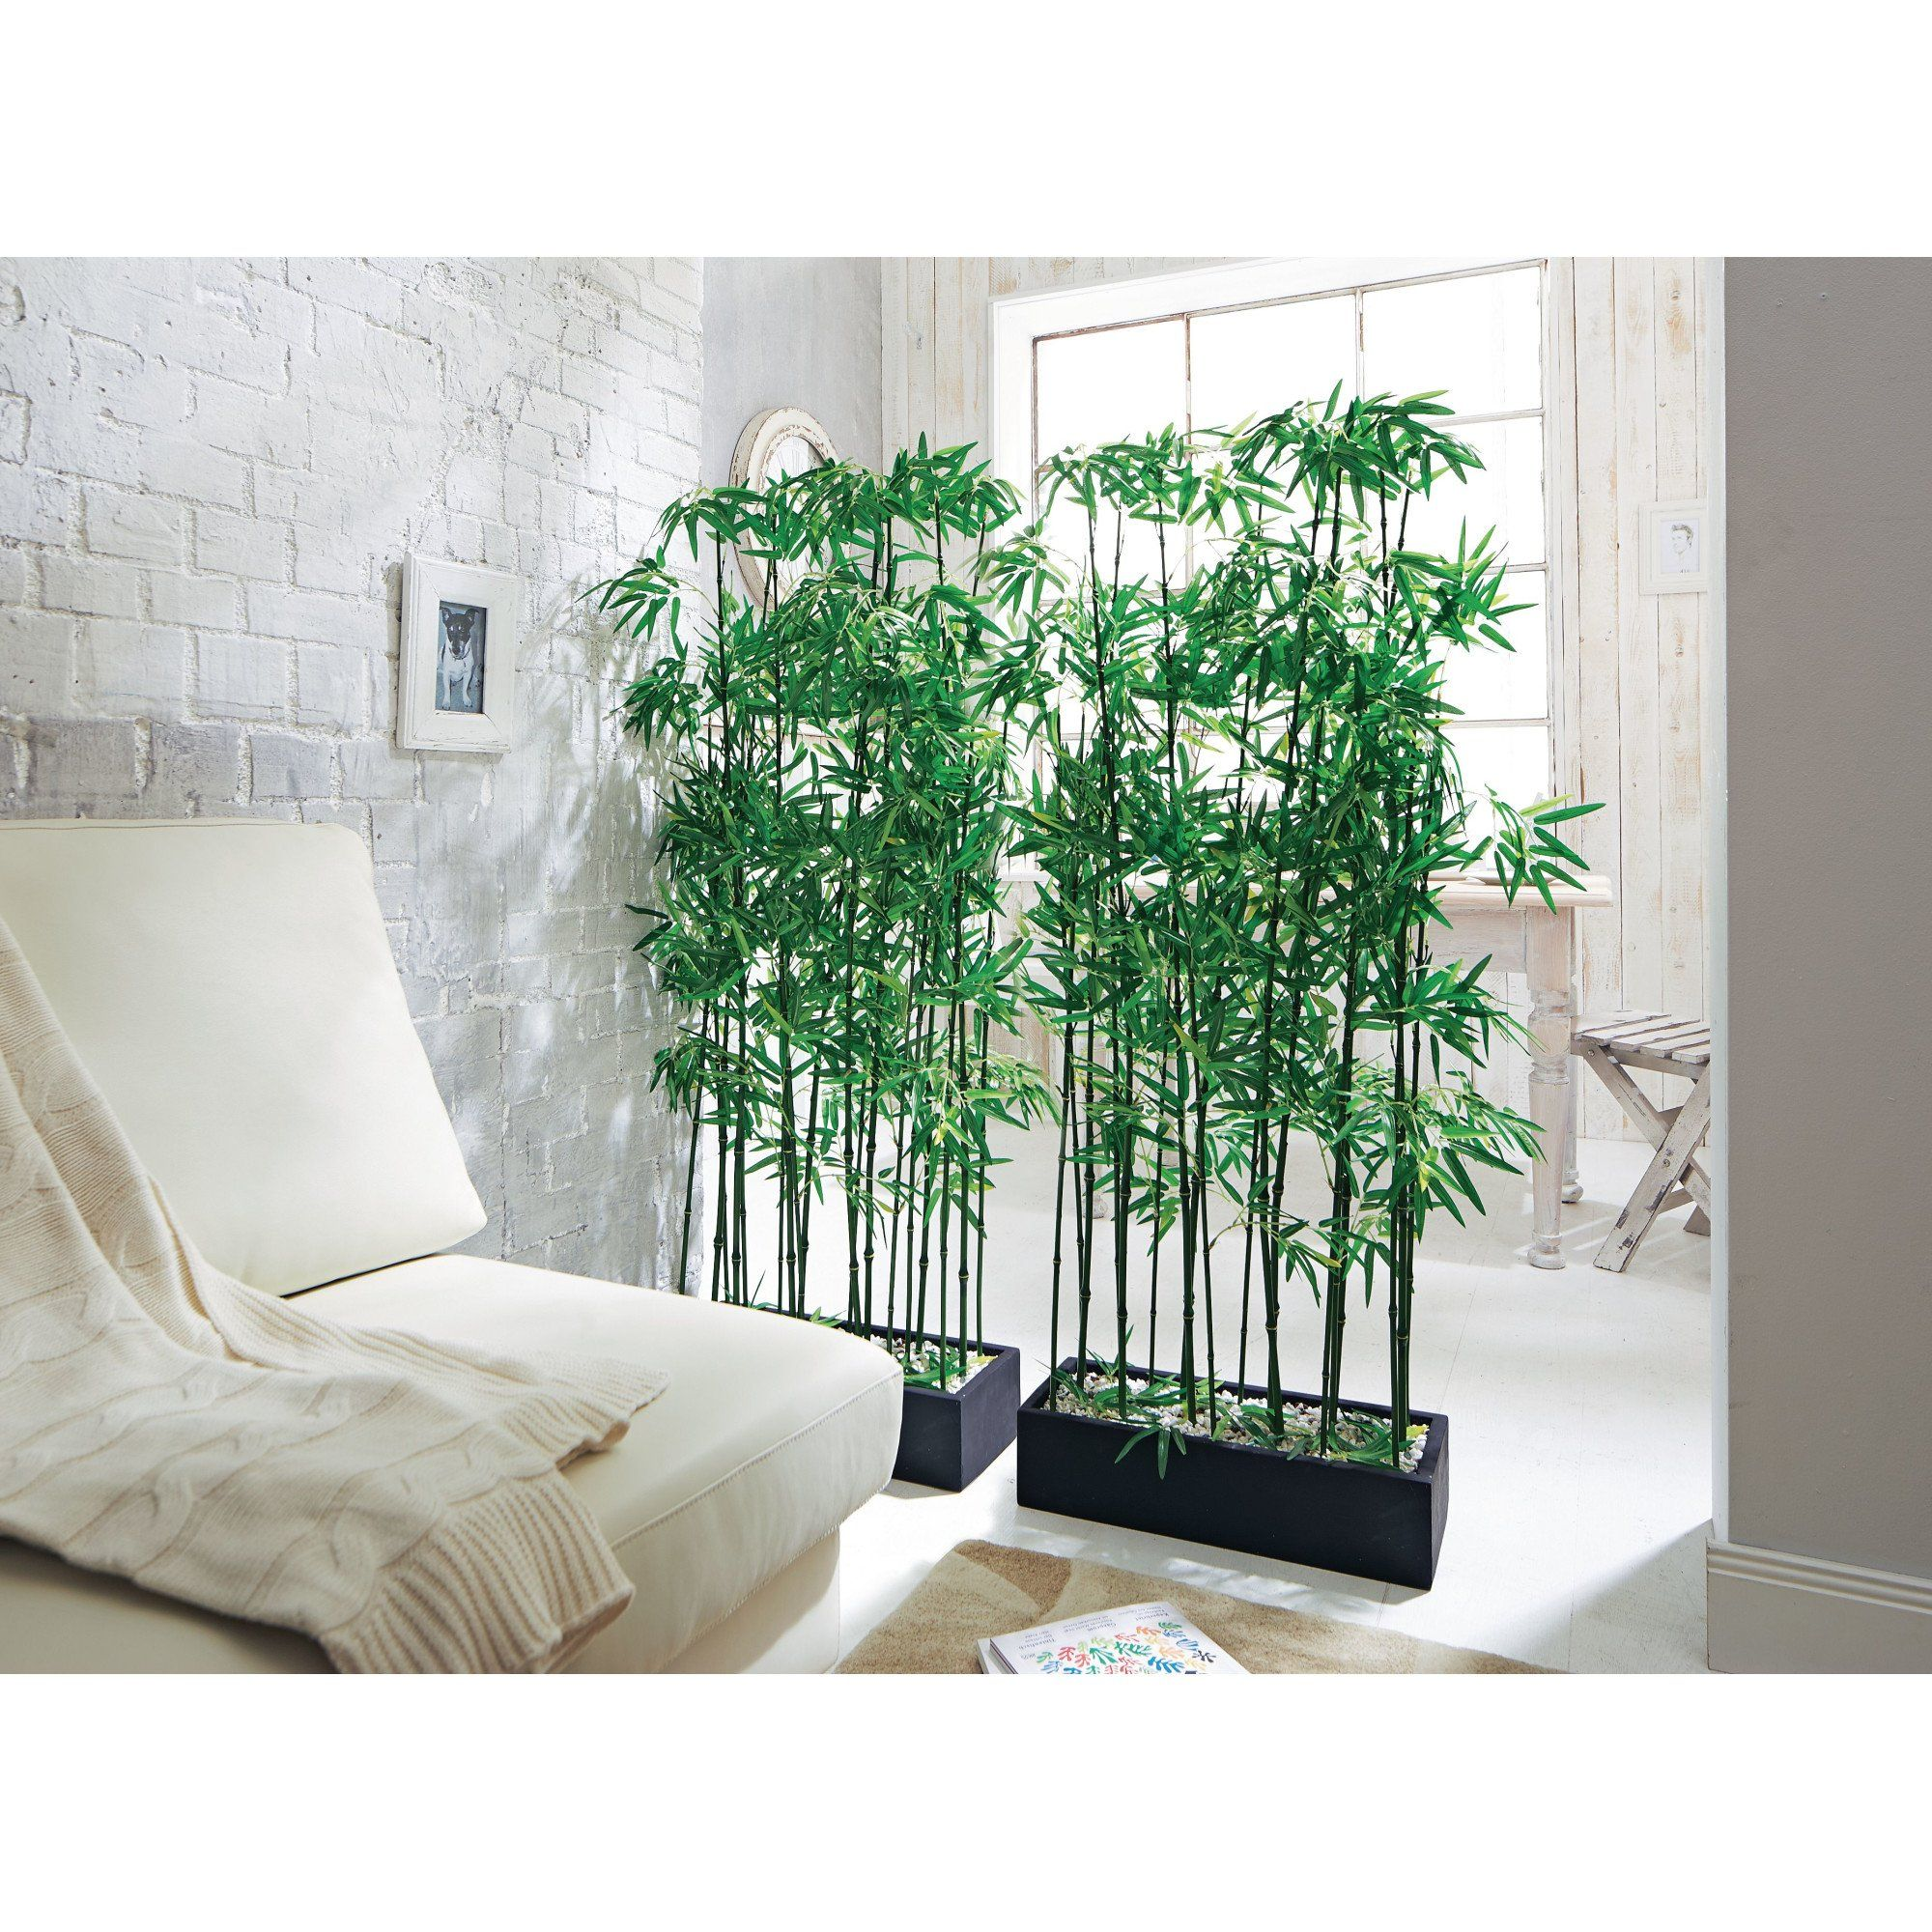 Artificial Bamboo Plant Room Divider Approx 140 Cm High Amazon Co